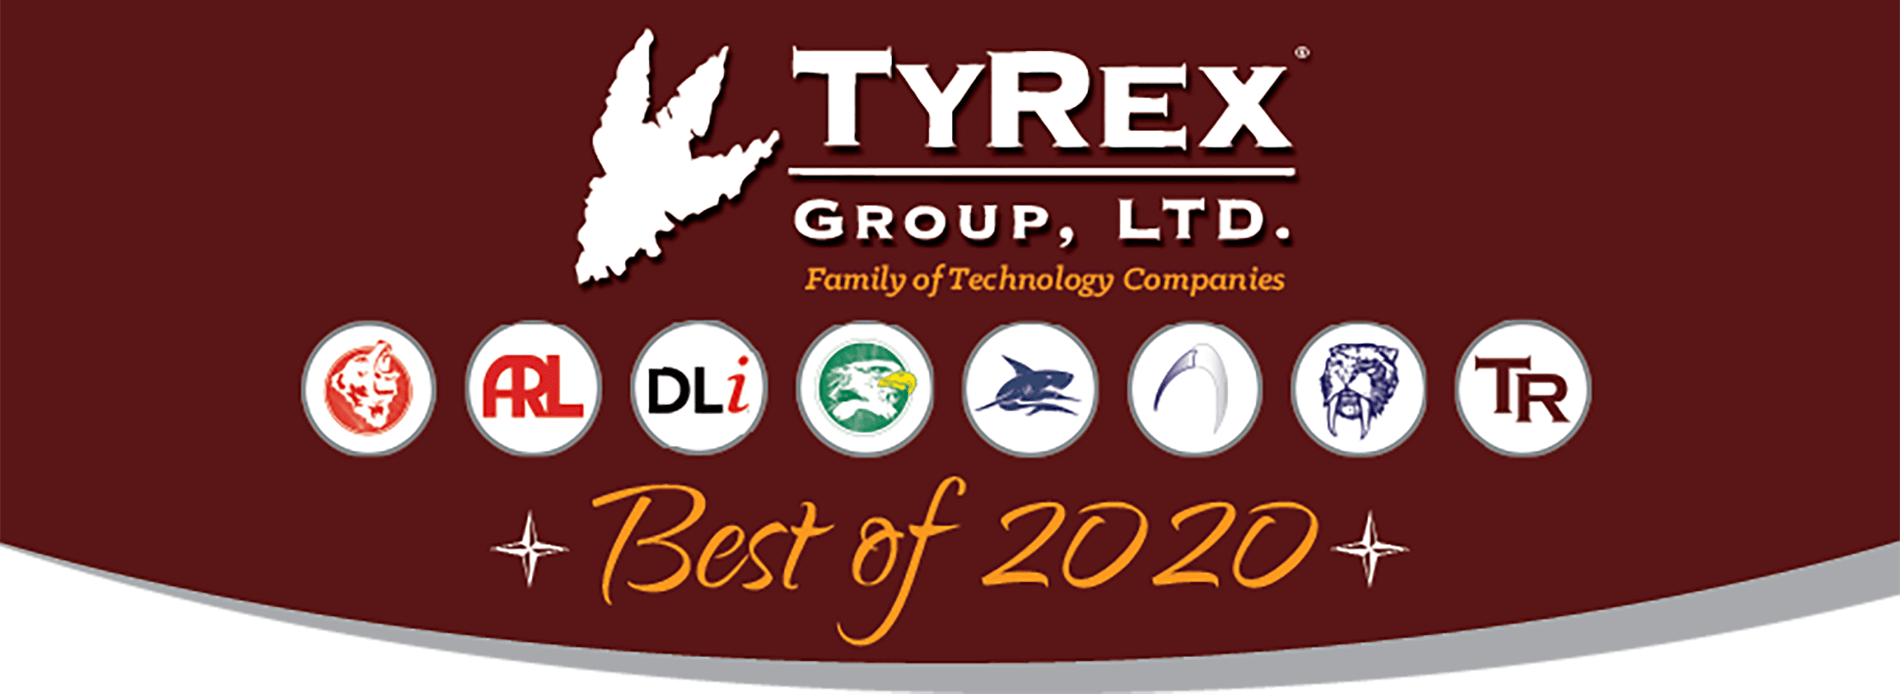 TyRex Technology Family Best of 2020